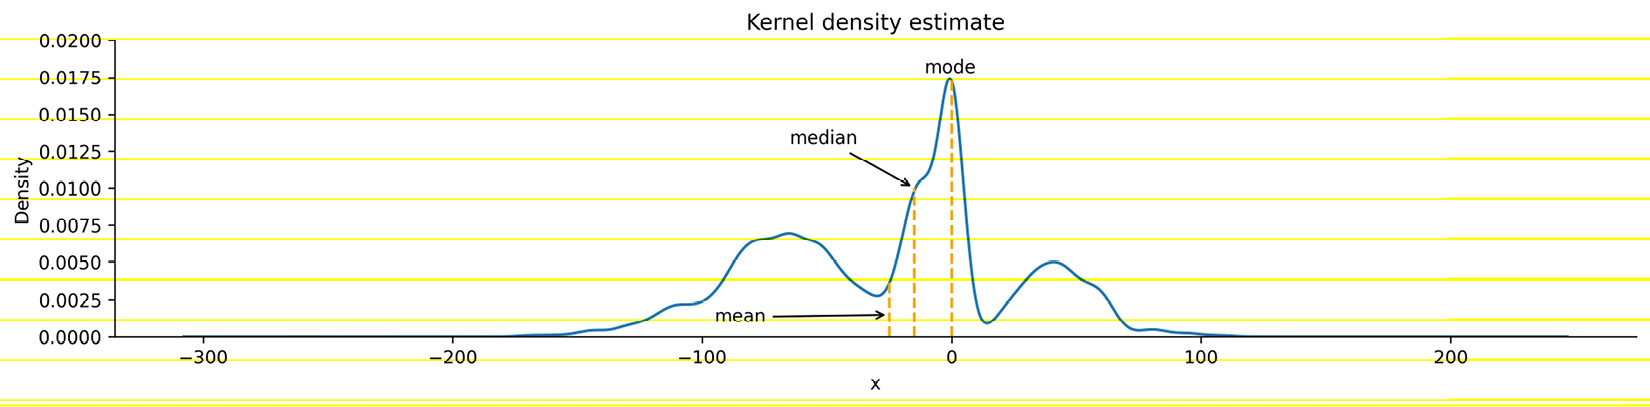 Figure 1.8 – KDE with marked measures of center